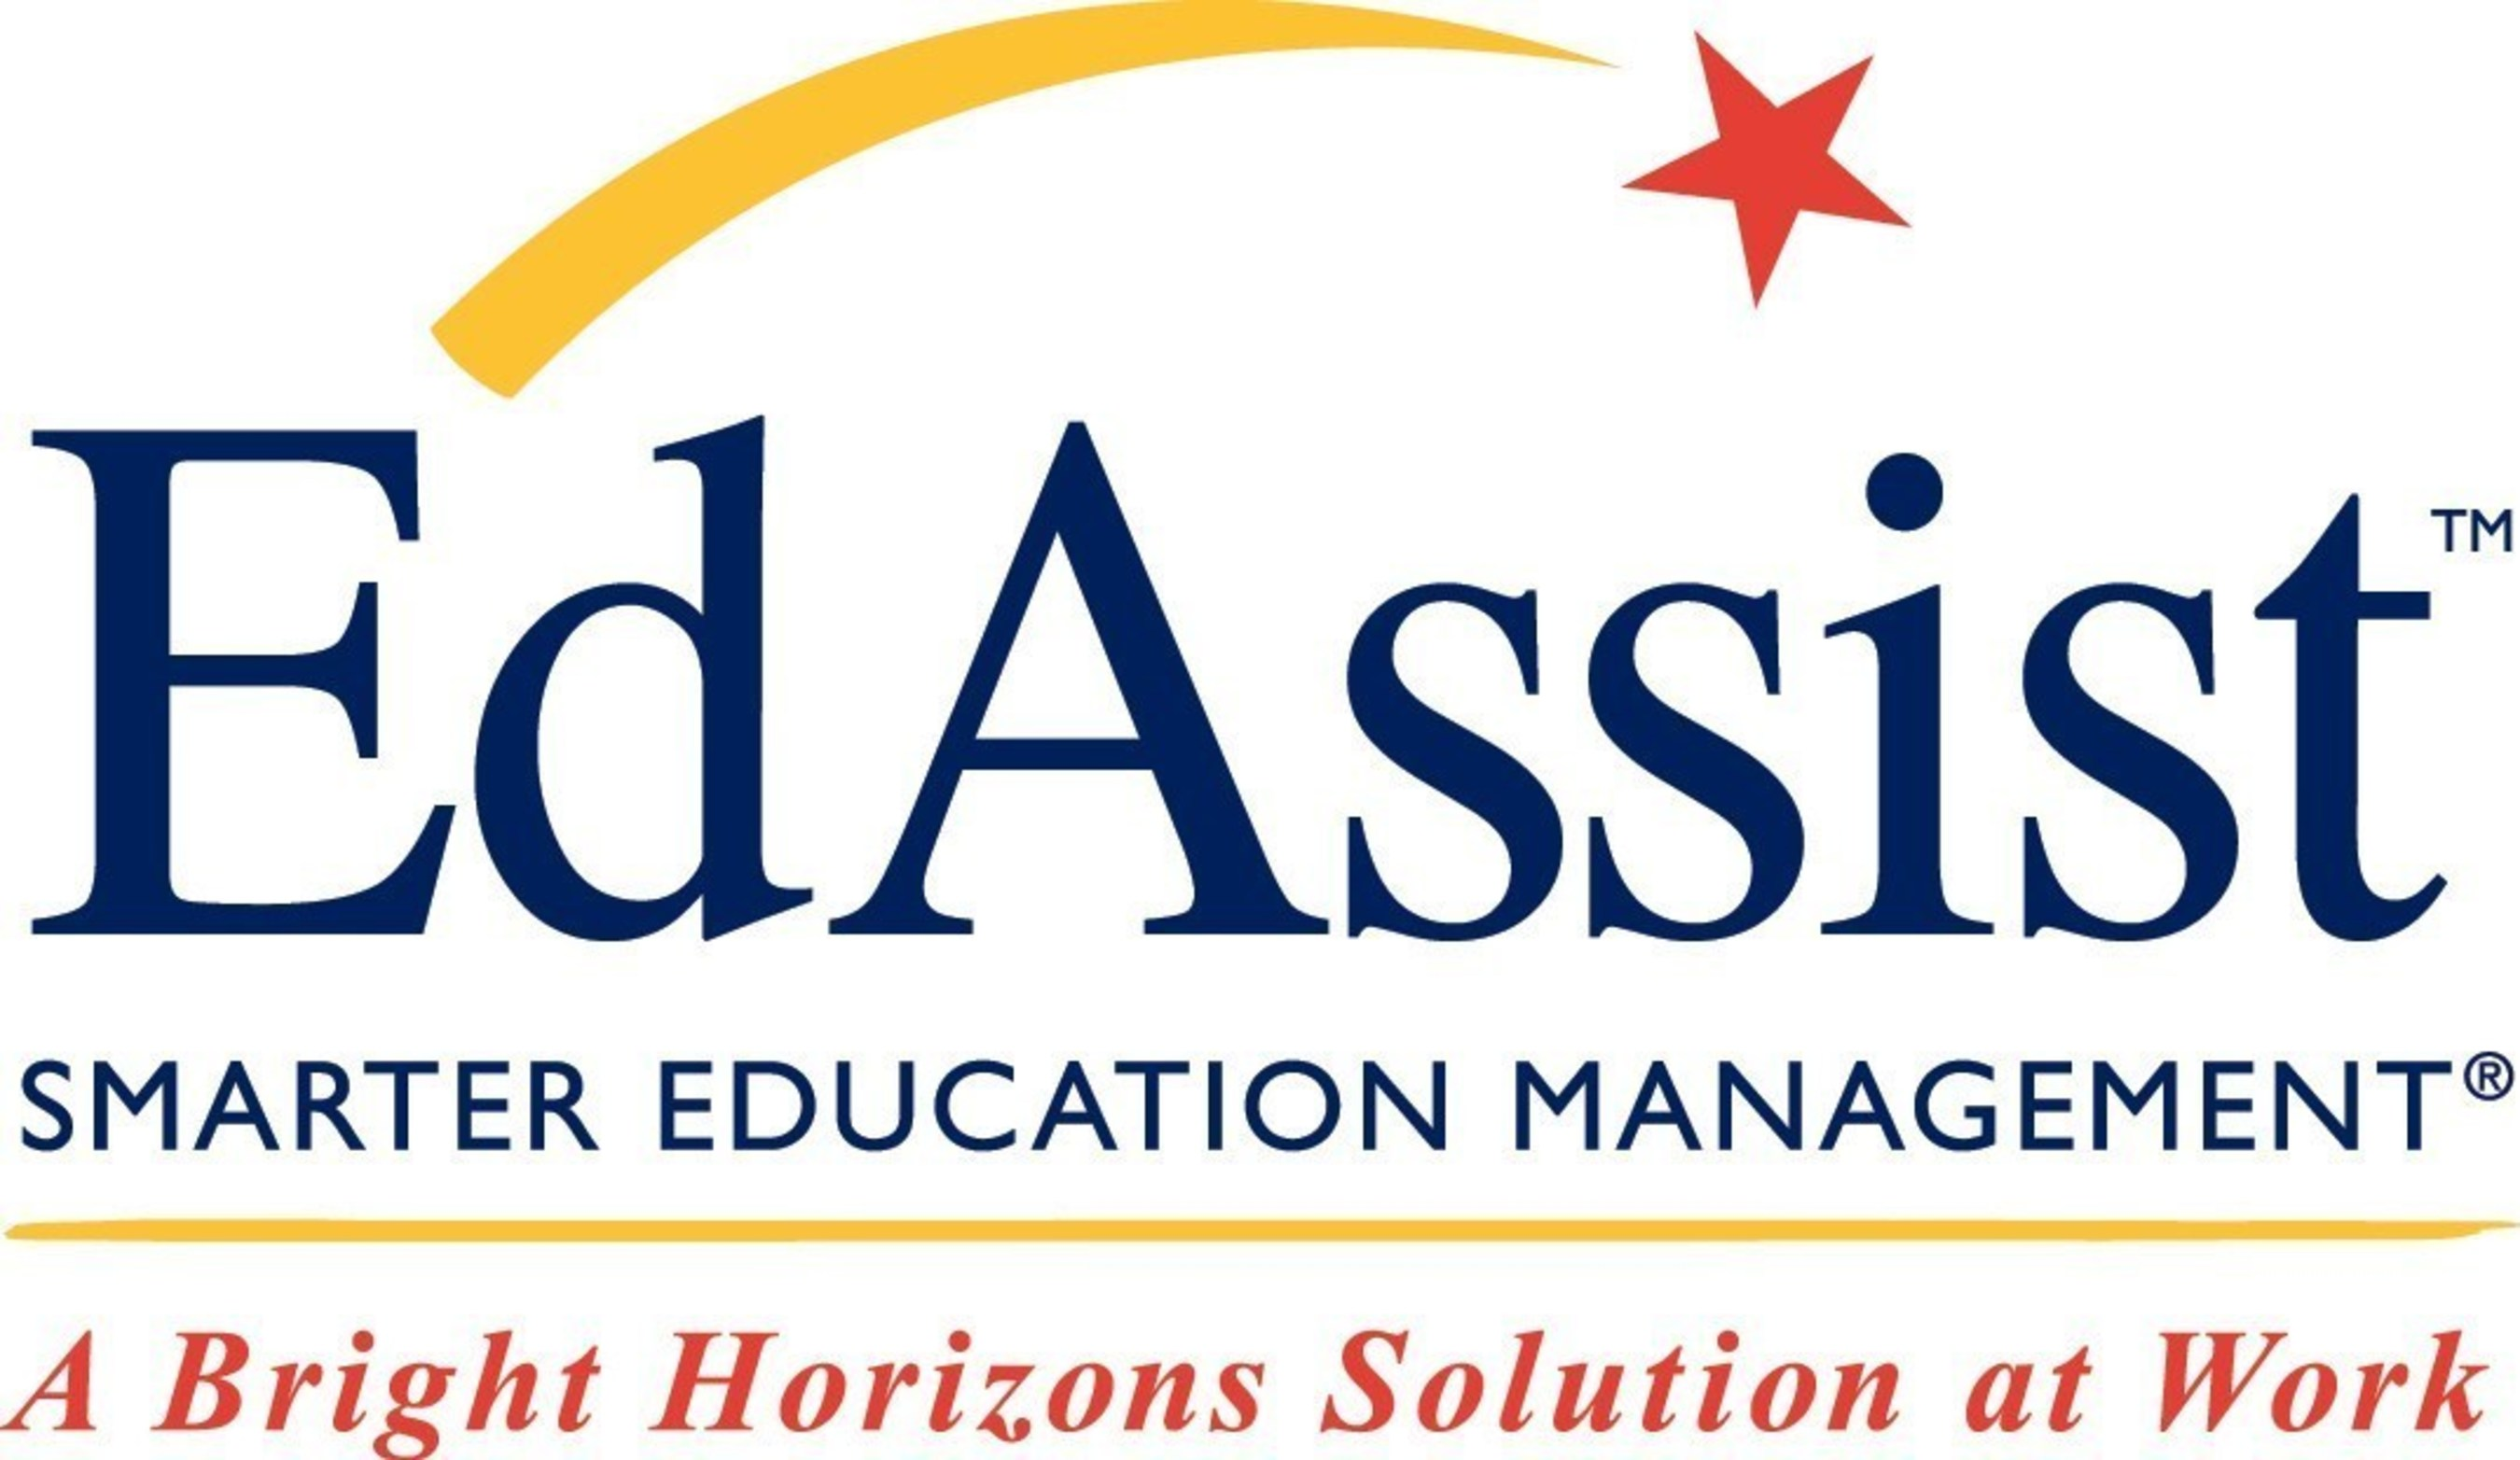 EdAssist is a leading provider of strategic tuition assistance solutions that drive employee performance, build talent pools, and deliver impressive ROI. EdAssist is a Bright Horizons(R) Solution at Work.